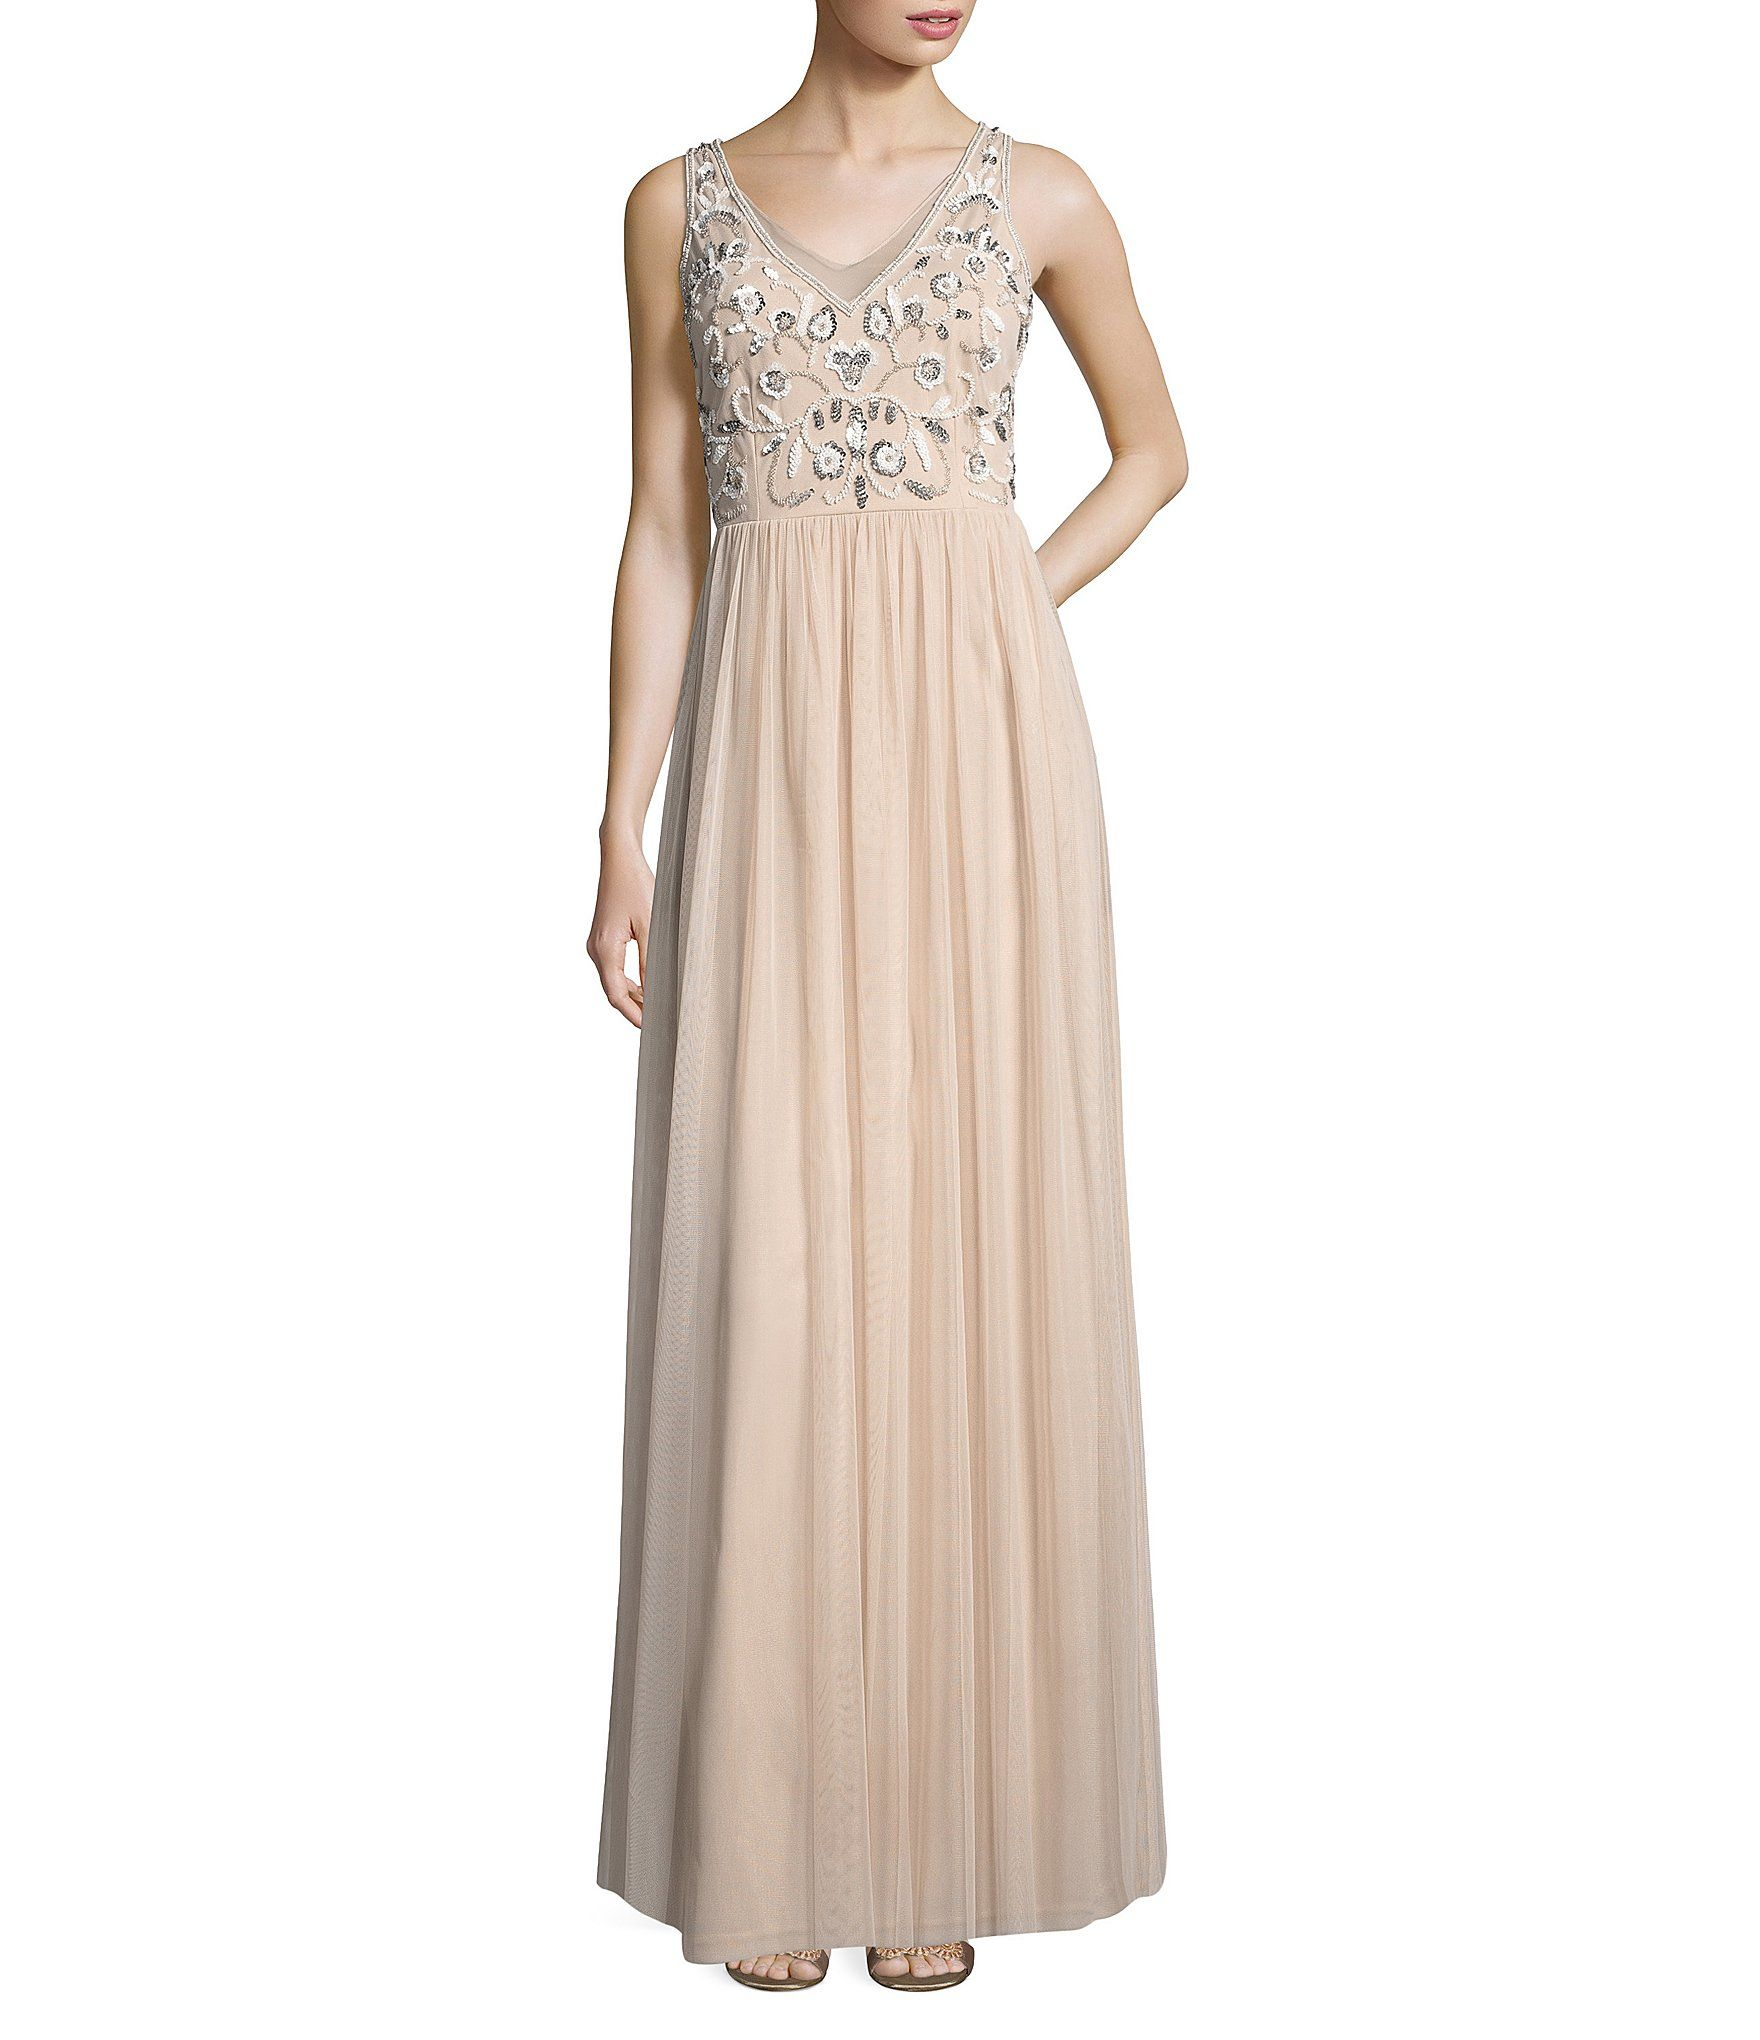 c081d74b878 Adrianna Papell Beaded Bodice Chiffon Long Dress  Dillards